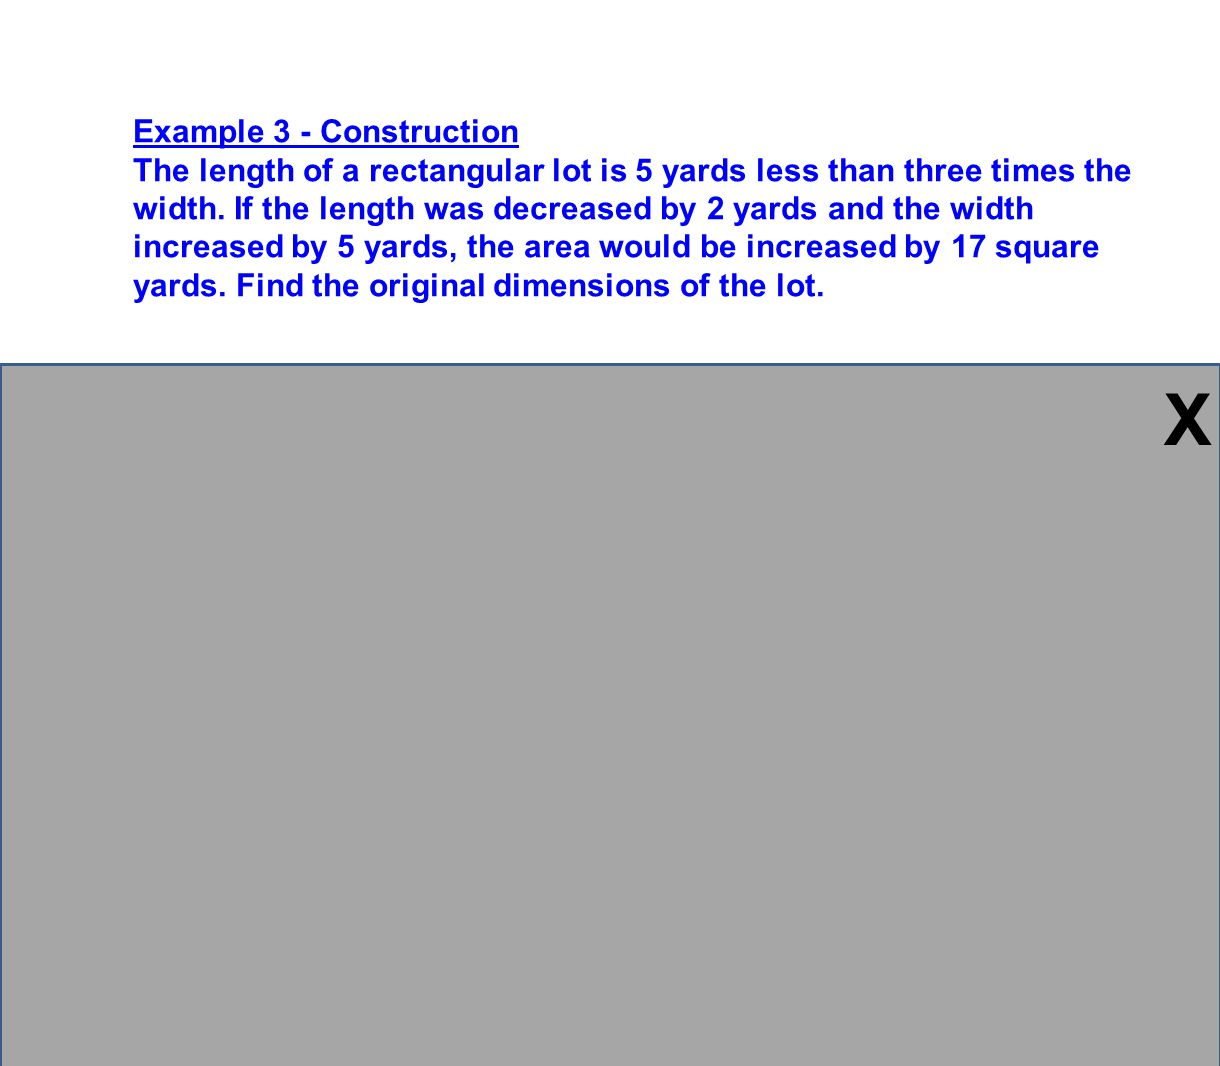 Example 3 - Construction The length of a rectangular lot is 5 yards less than three times the width. If the length was decreased by 2 yards and the wi